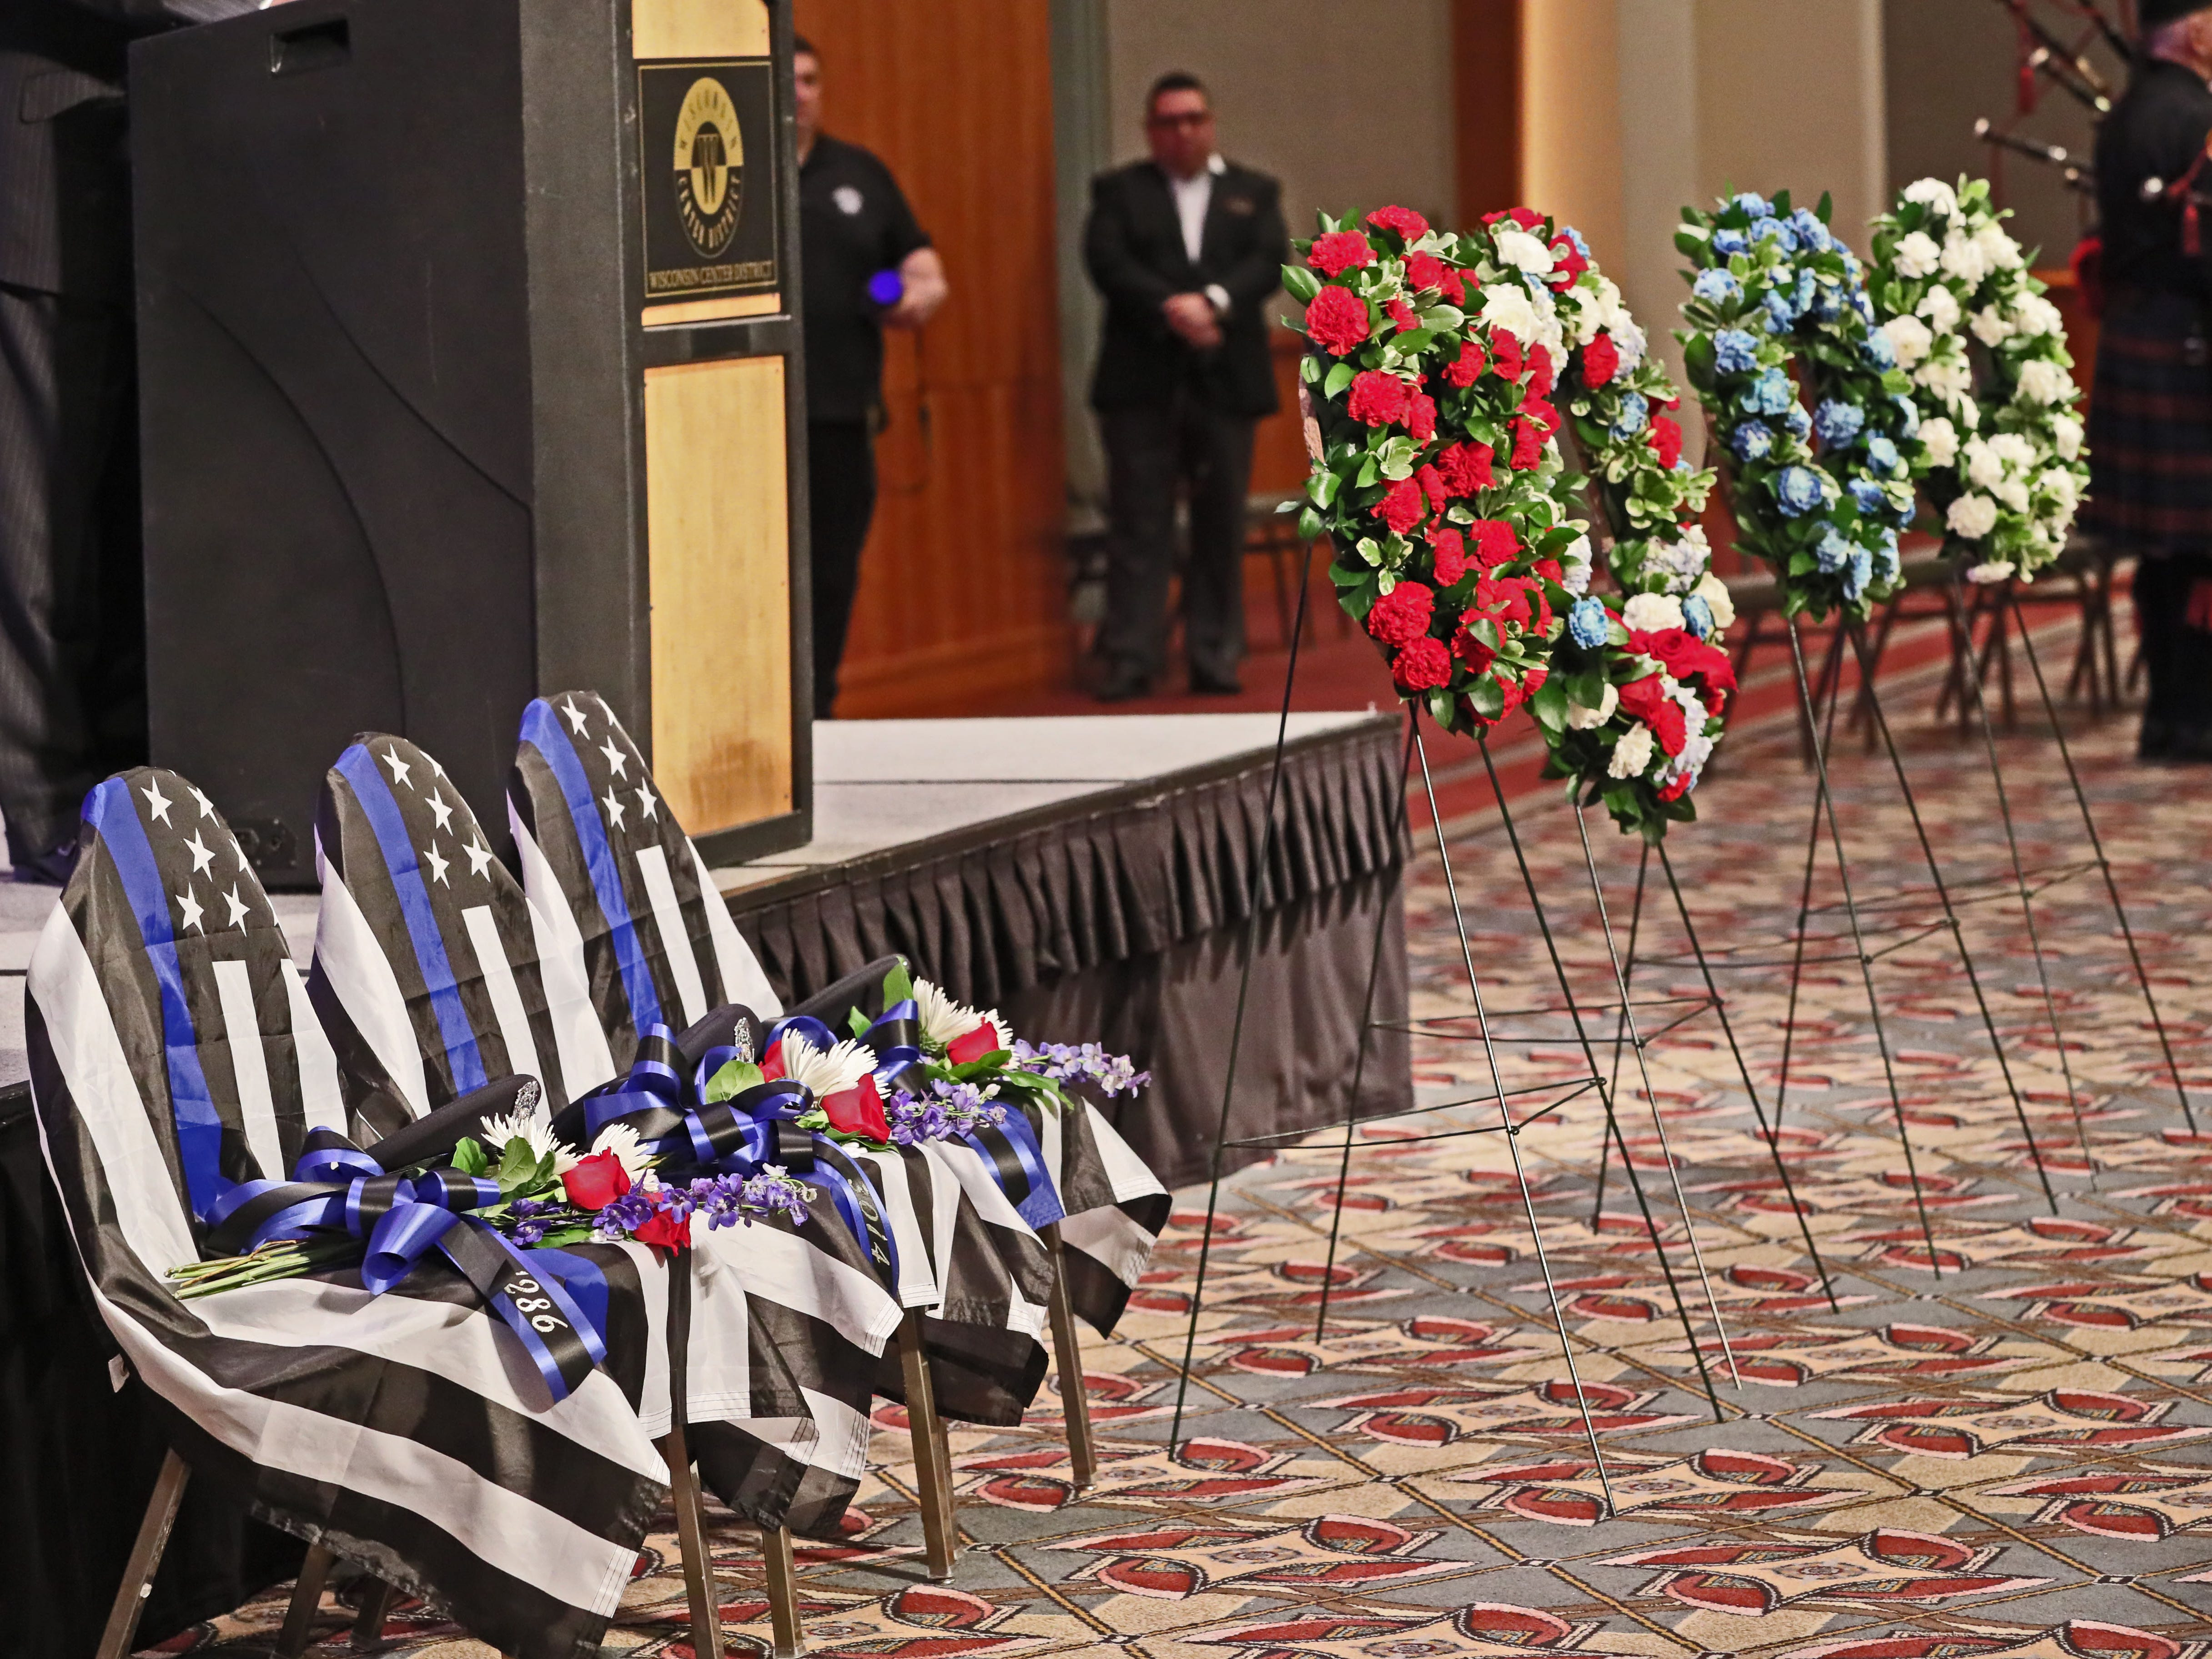 Three chairs draped with law enforcement flags memorialize three Milwaukee police officers killed in the line of duty since June 2018 at the Greater Milwaukee Law Enforcement Memorial Ceremony held at the Wisconsin Center on Wednesday.